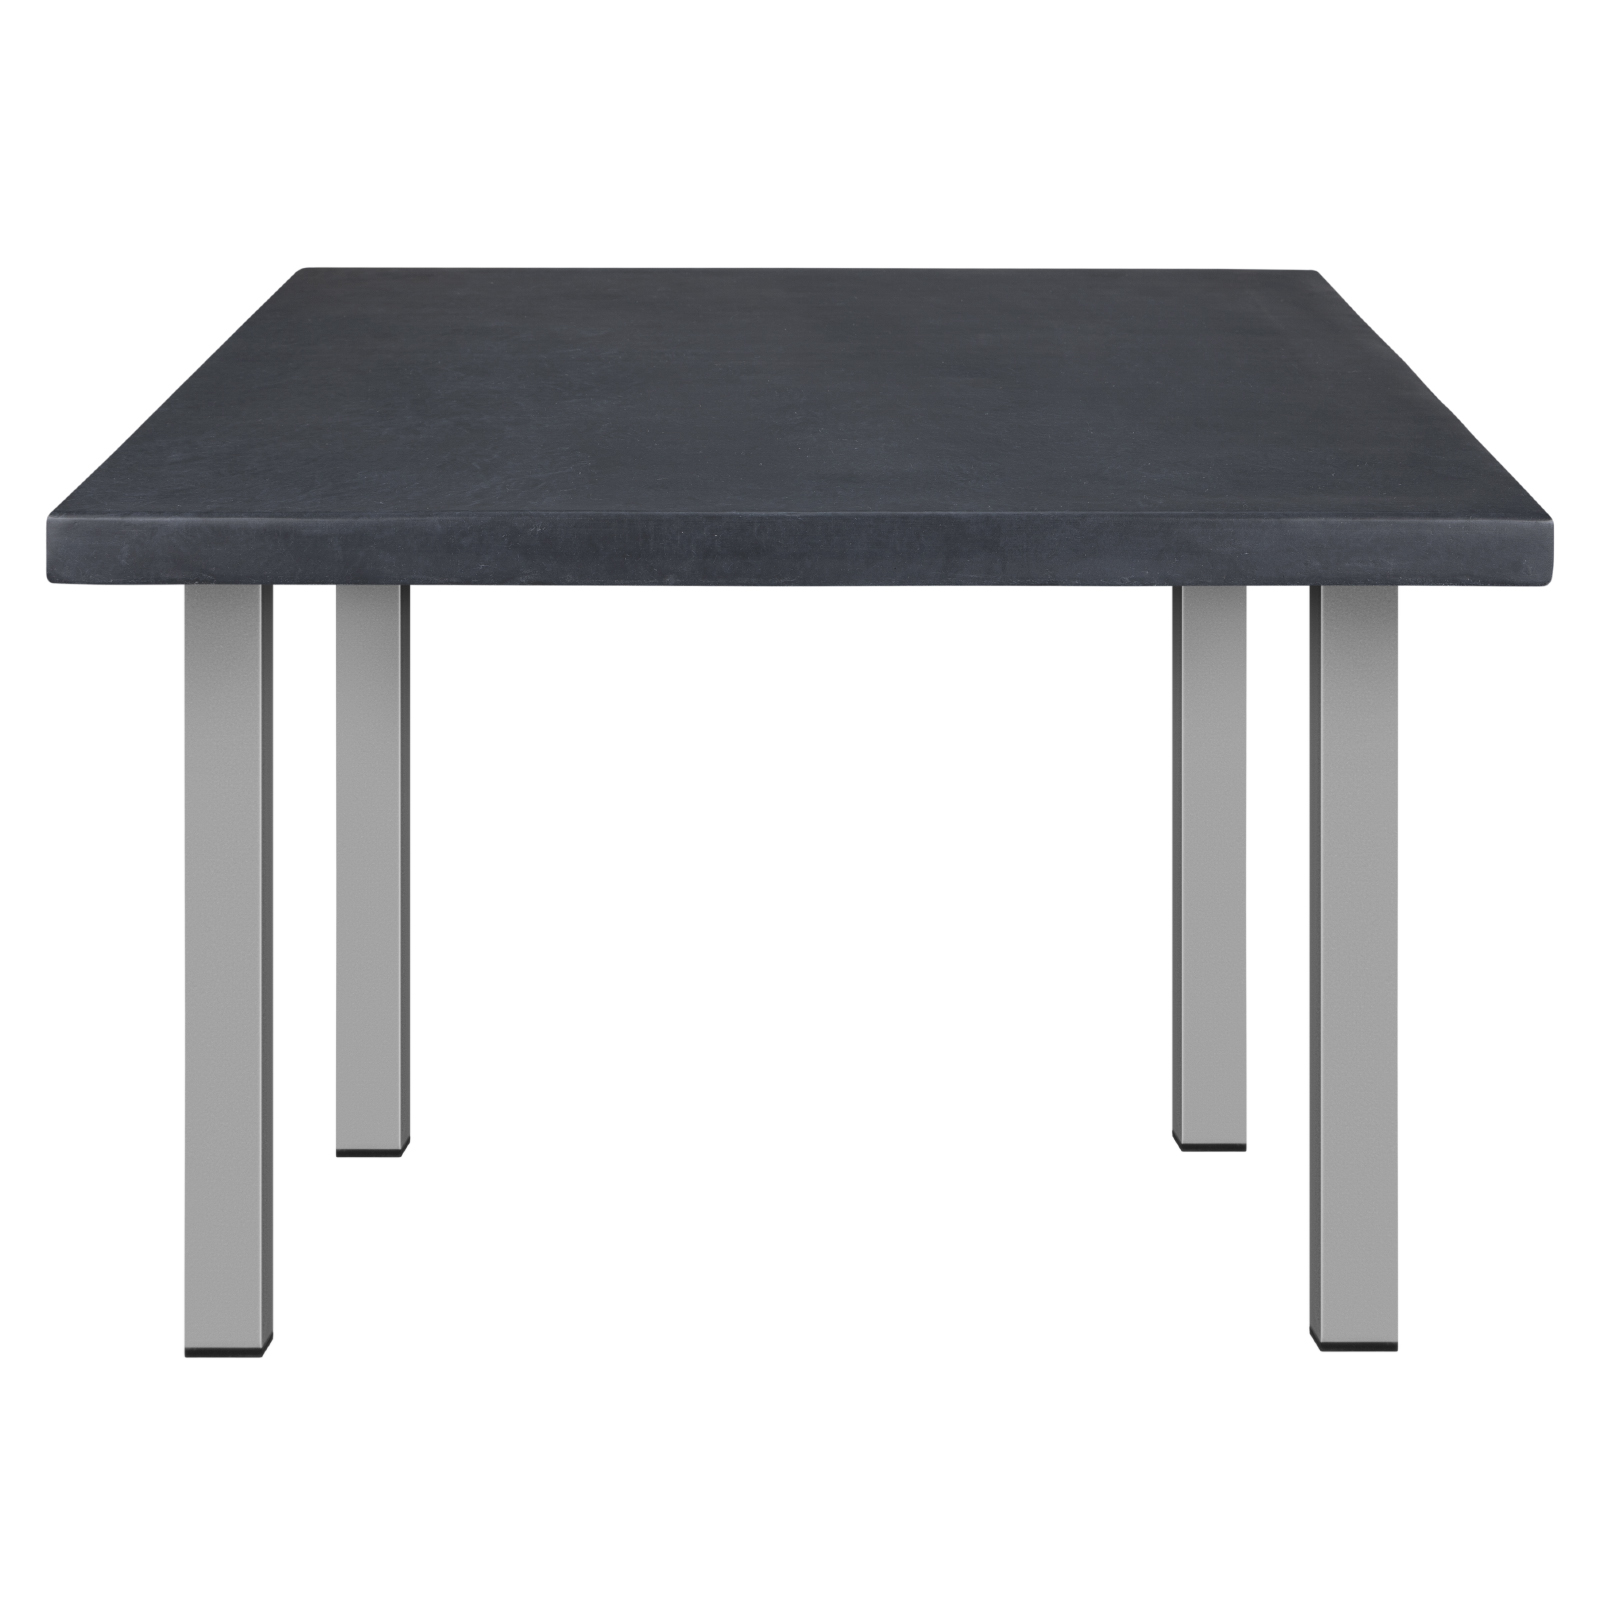 SEASIDE TABLE TOPS $259.00 – $389.00 CLICK FOR SPEC SHEET